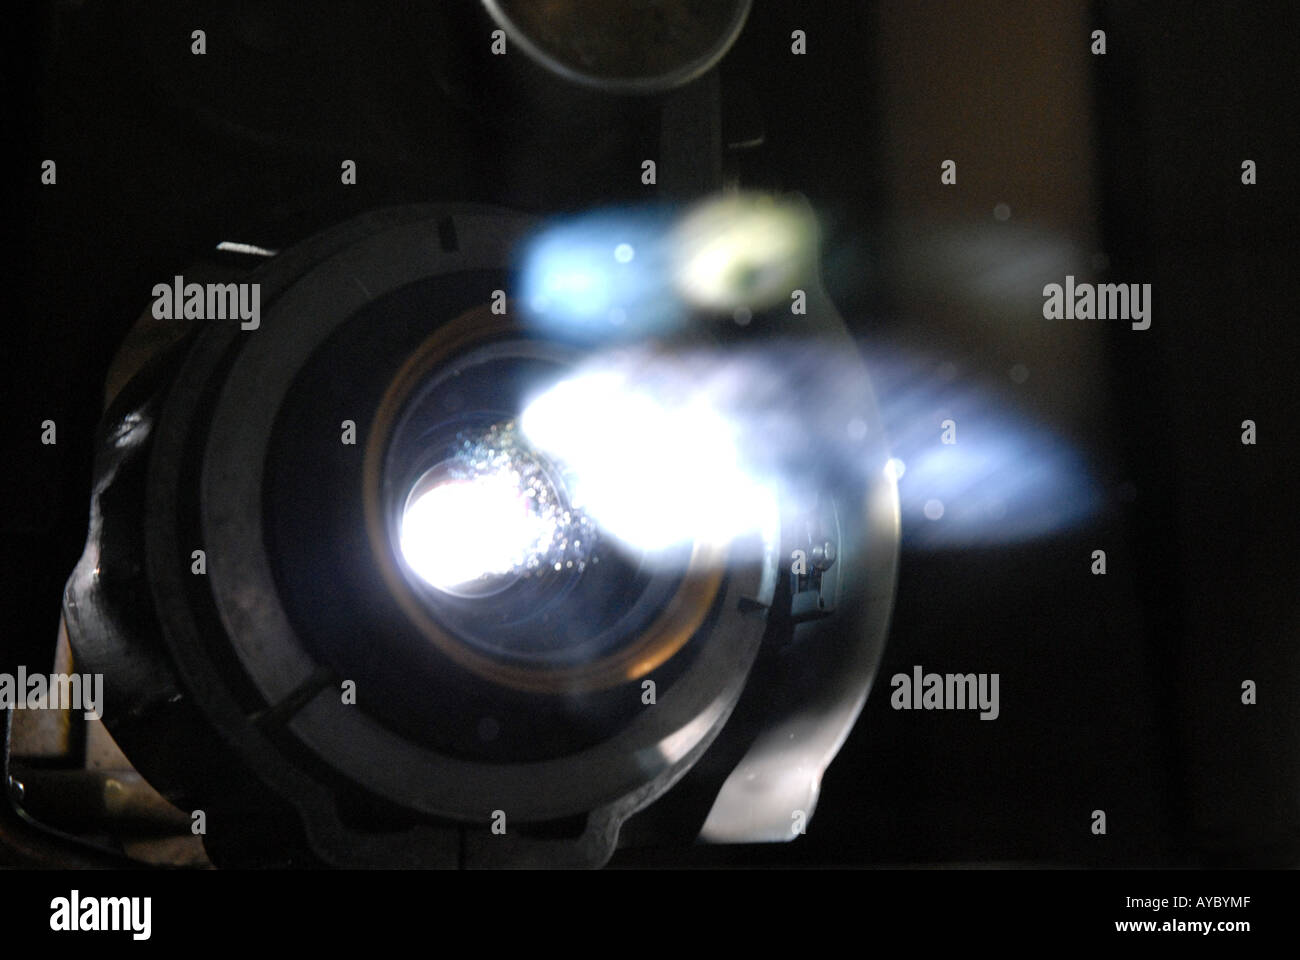 Film projector lens image - Stock Image